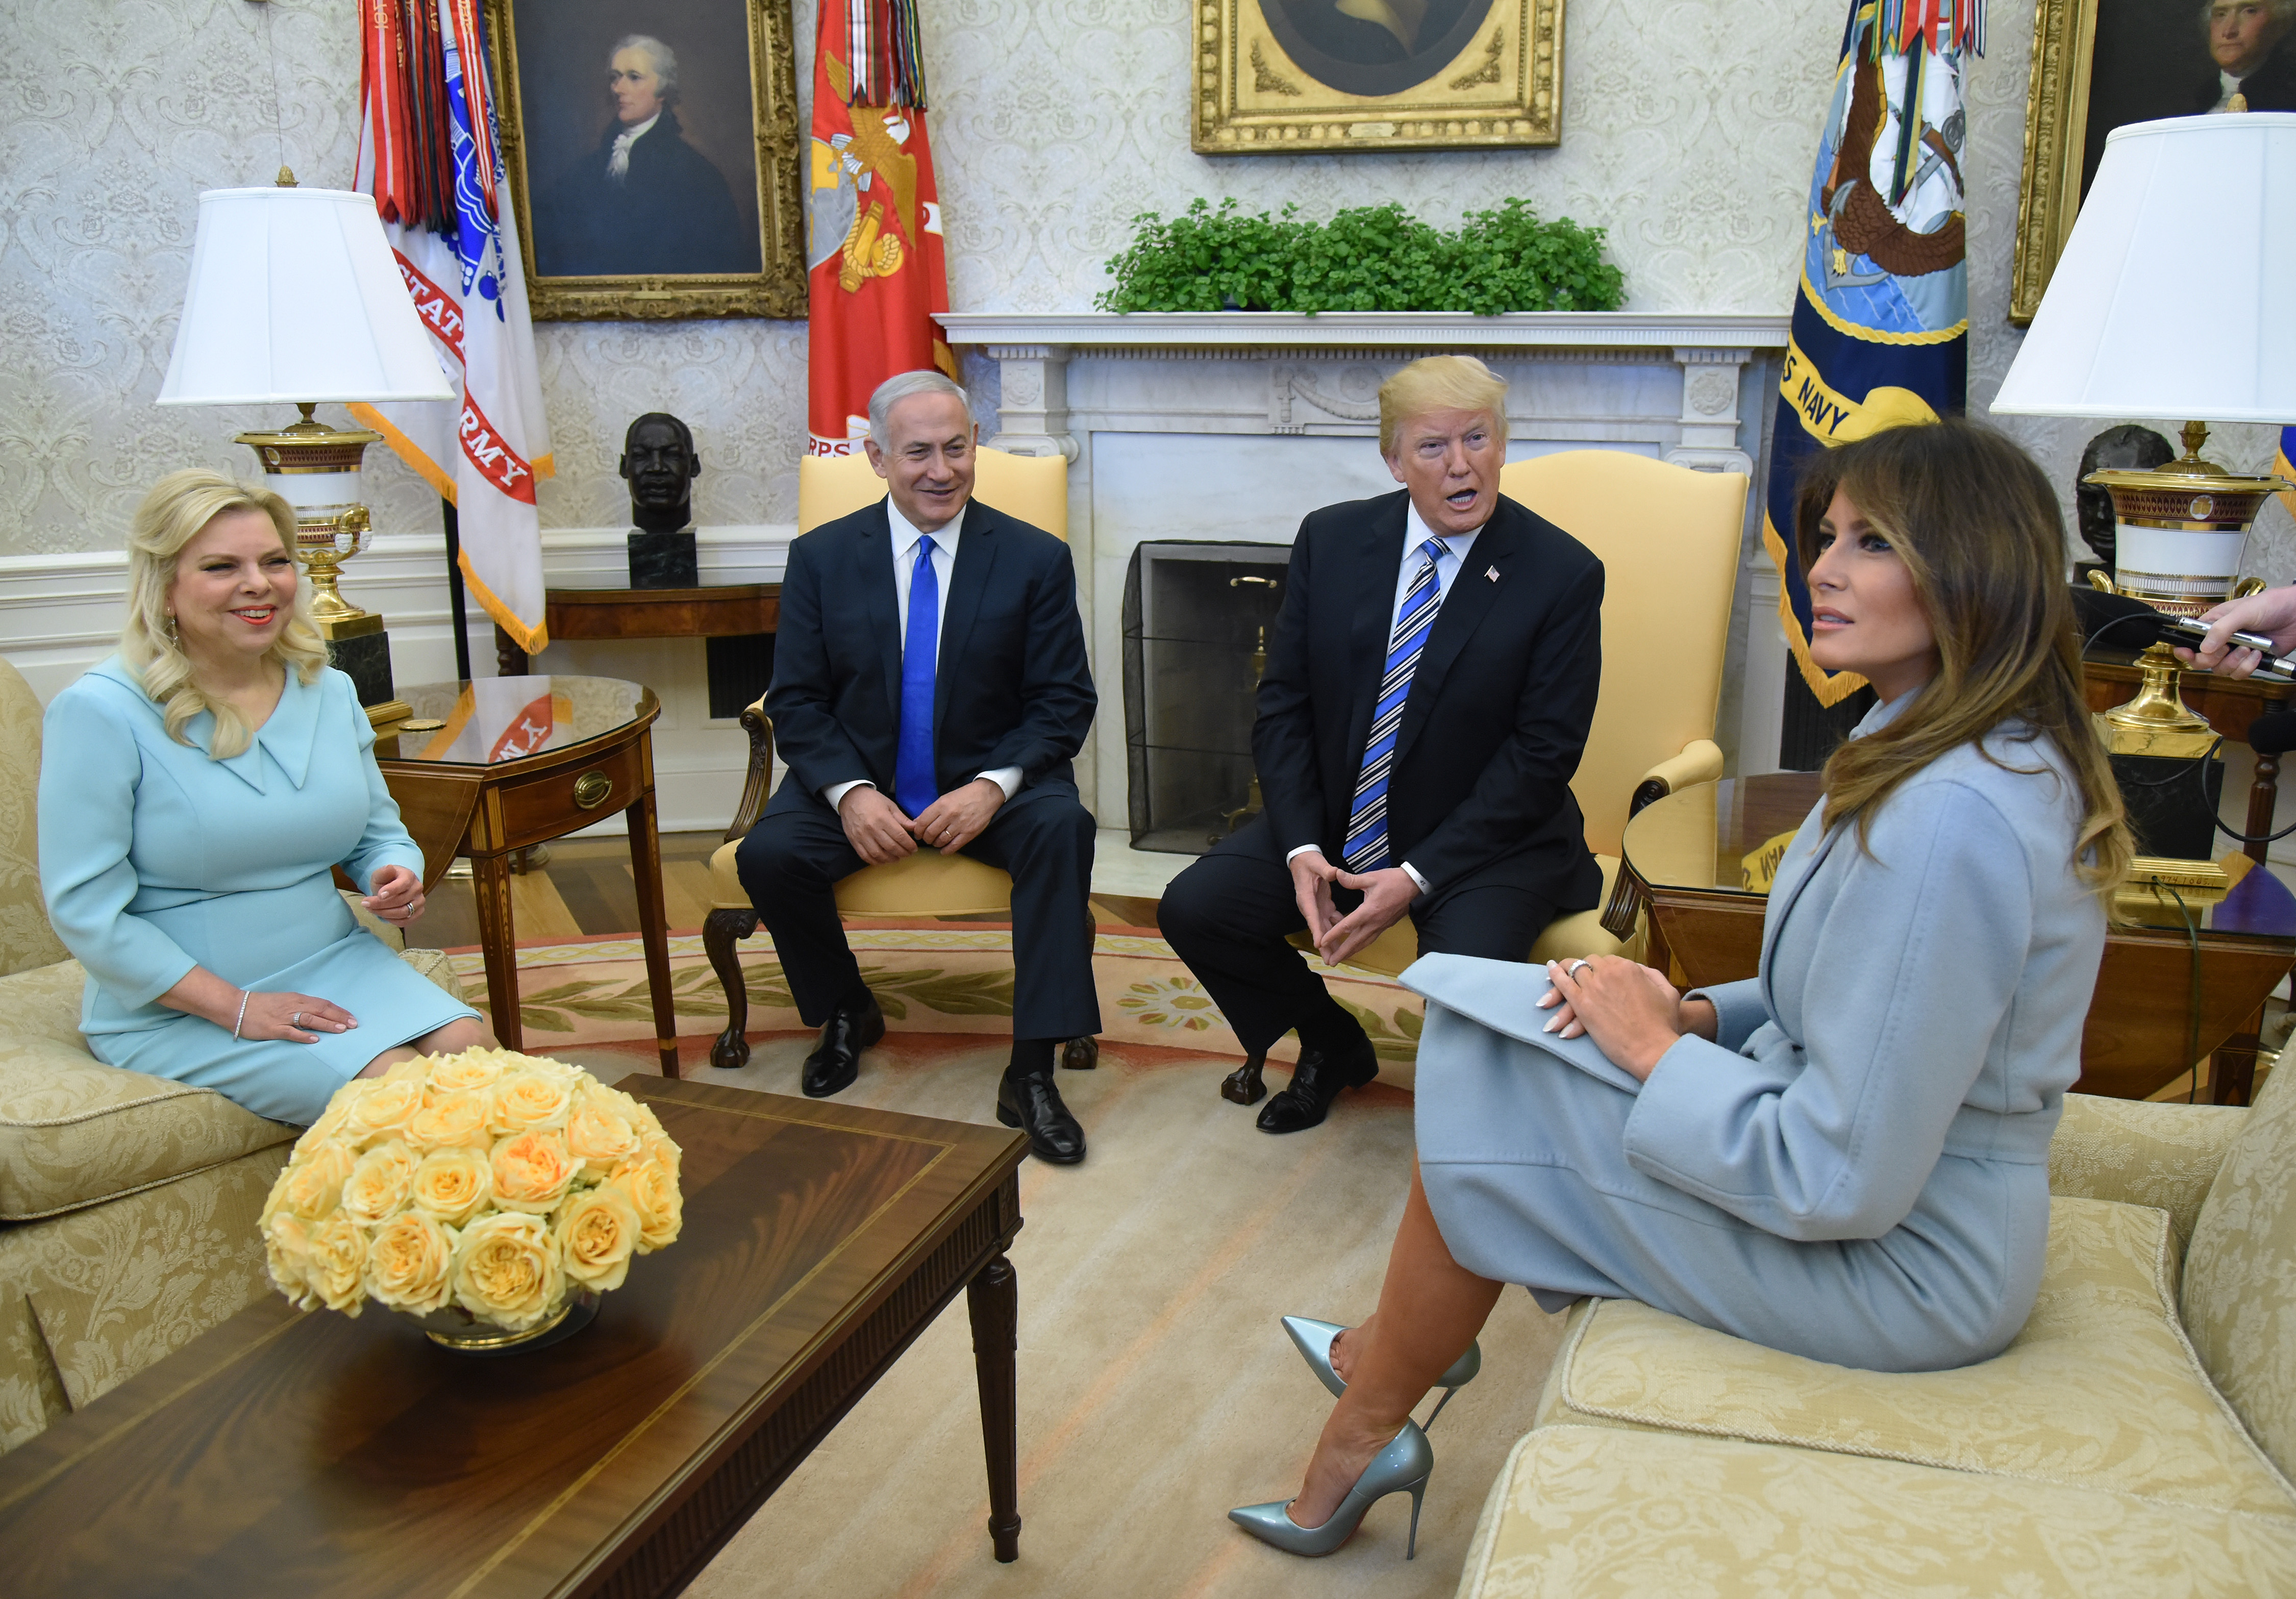 March 5, 2018 - Washington, District of Columbia, United States of America - First lady Melania Trump attends a meeting  with Prime Minister Benjamin Netanyahu and Sara Netanyahu of Israel in the Oval Office of the White House in Washington, DC, March 5, 2018.  . <P> Pictured: United States President Donald J. Trump and first lady Melania Trump meet with Prime Minister Benjamin Netanyahu and Sara Netanyahu of Israel in the Oval Office <B>Ref: SPL1667784  050318  </B><BR/> Picture by: Zuma / Splash News<BR/> </P><P> <B>Splash News and Pictures</B><BR/> Los Angeles:310-821-2666<BR/> New York:212-619-2666<BR/> London:870-934-2666<BR/> <span id=